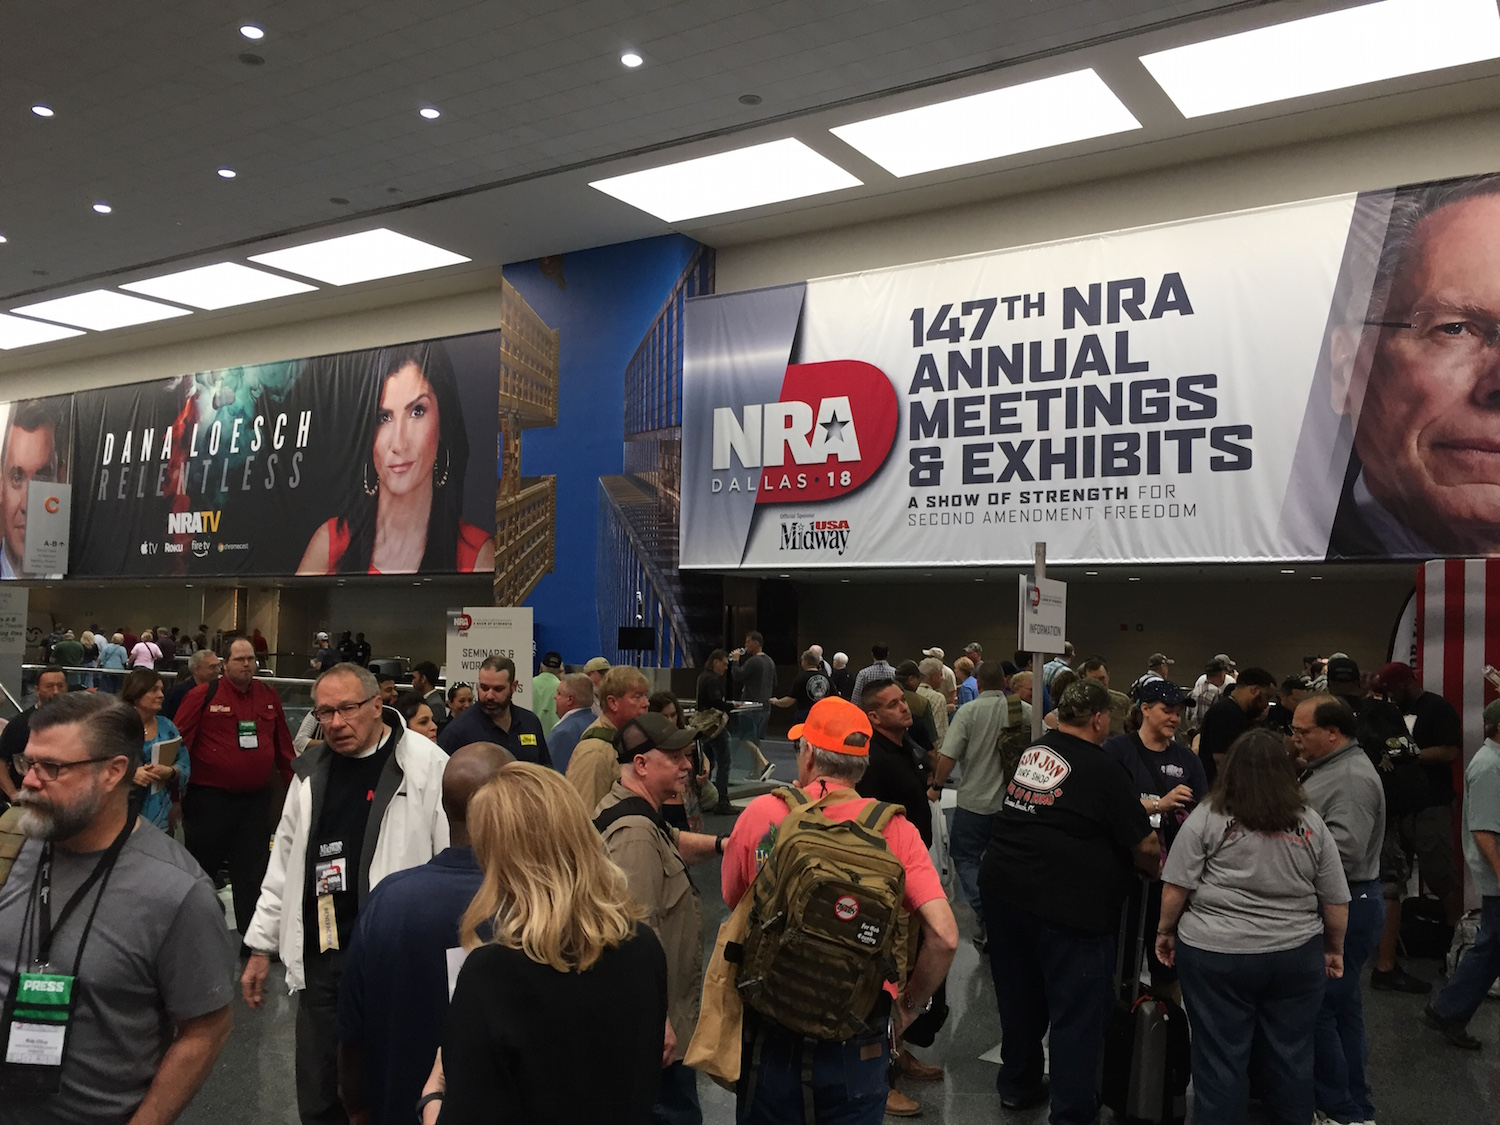 Washington Free Beacon: I Legally Carried a Gun at the NRA Annual Meetings